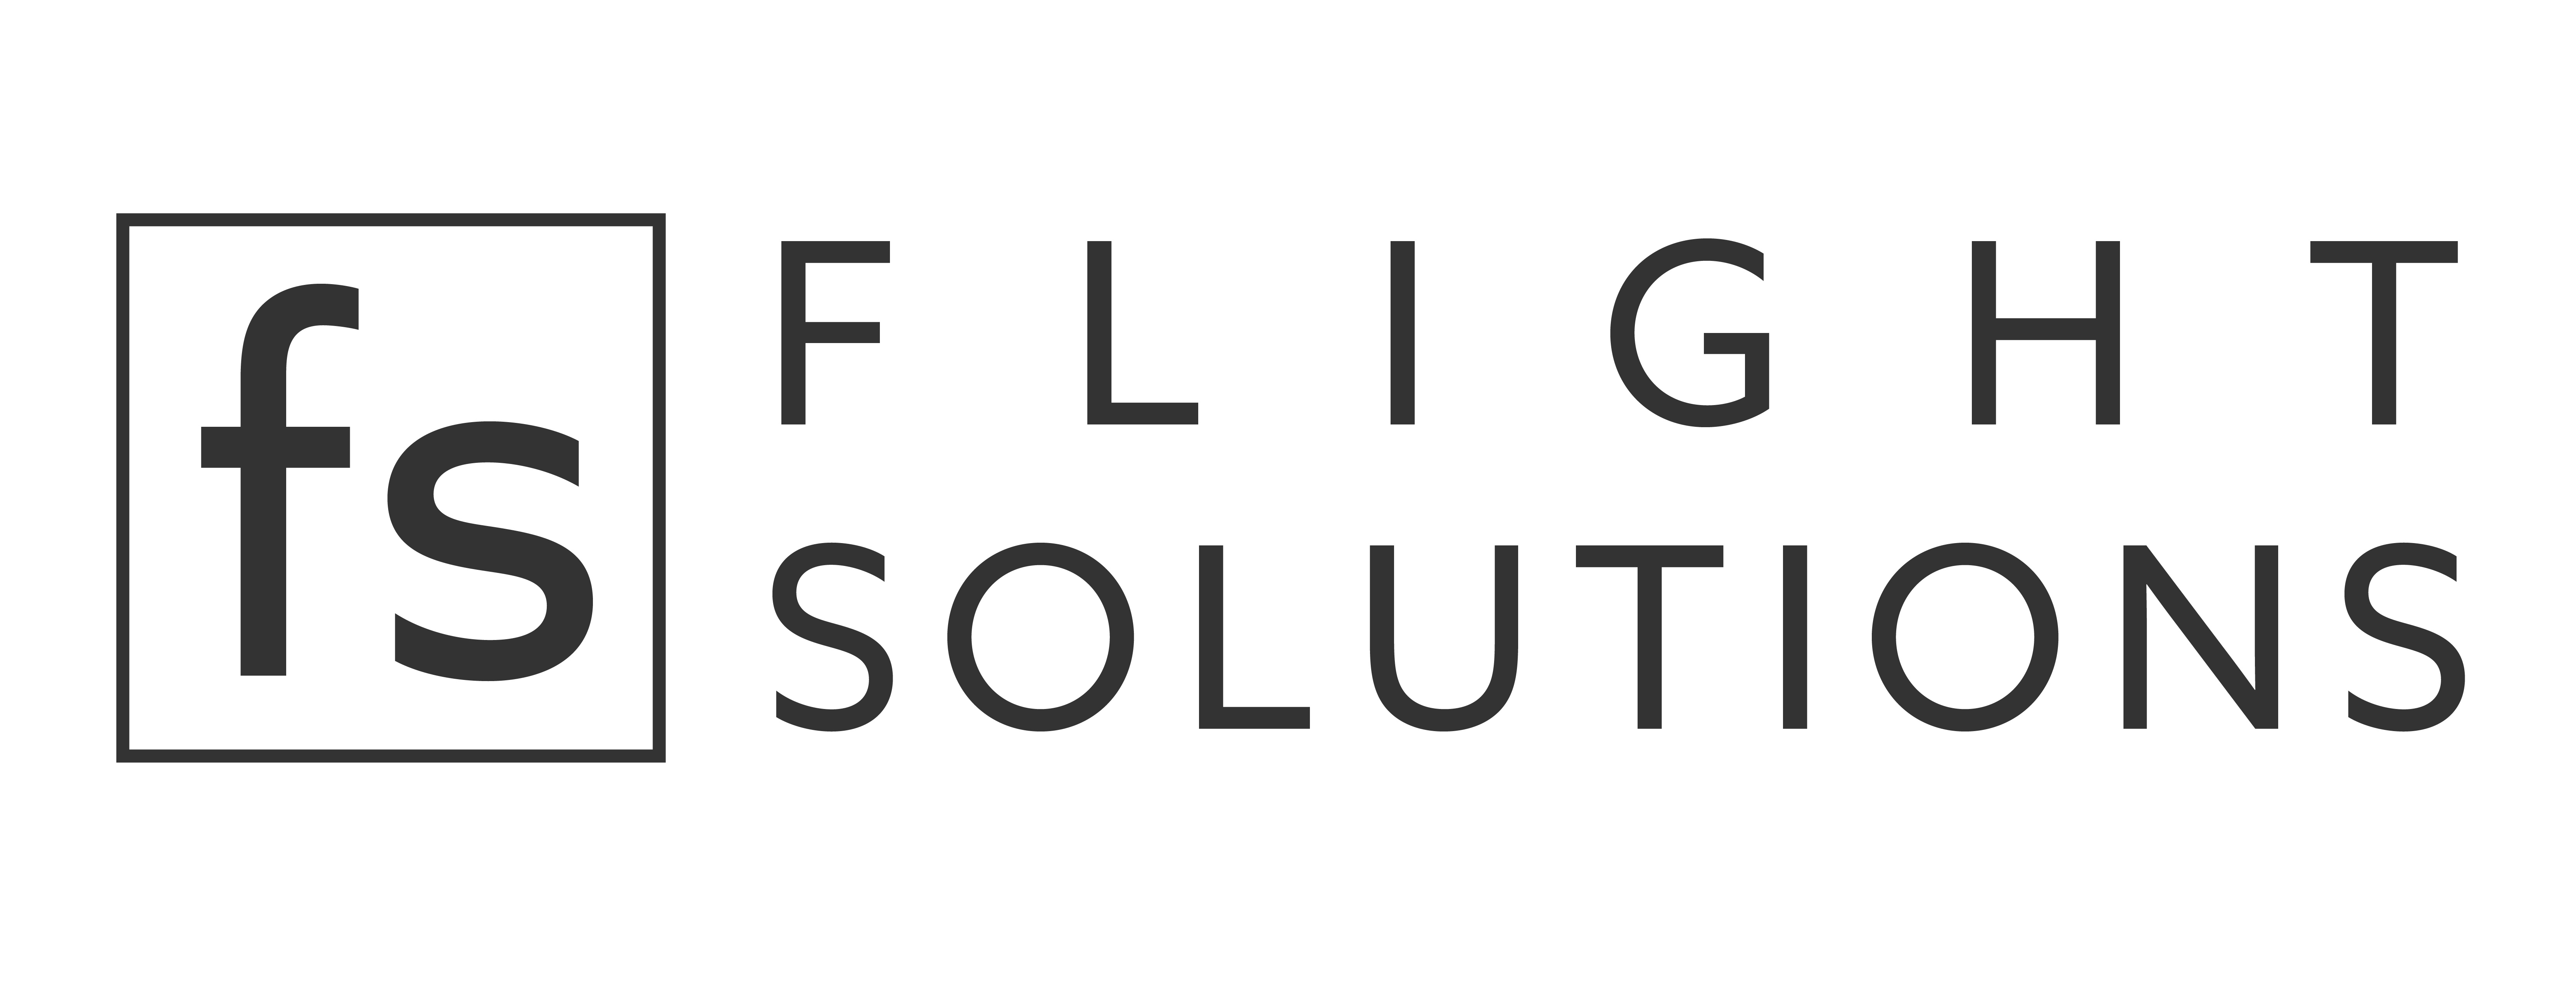 Flight Solutions International Limited